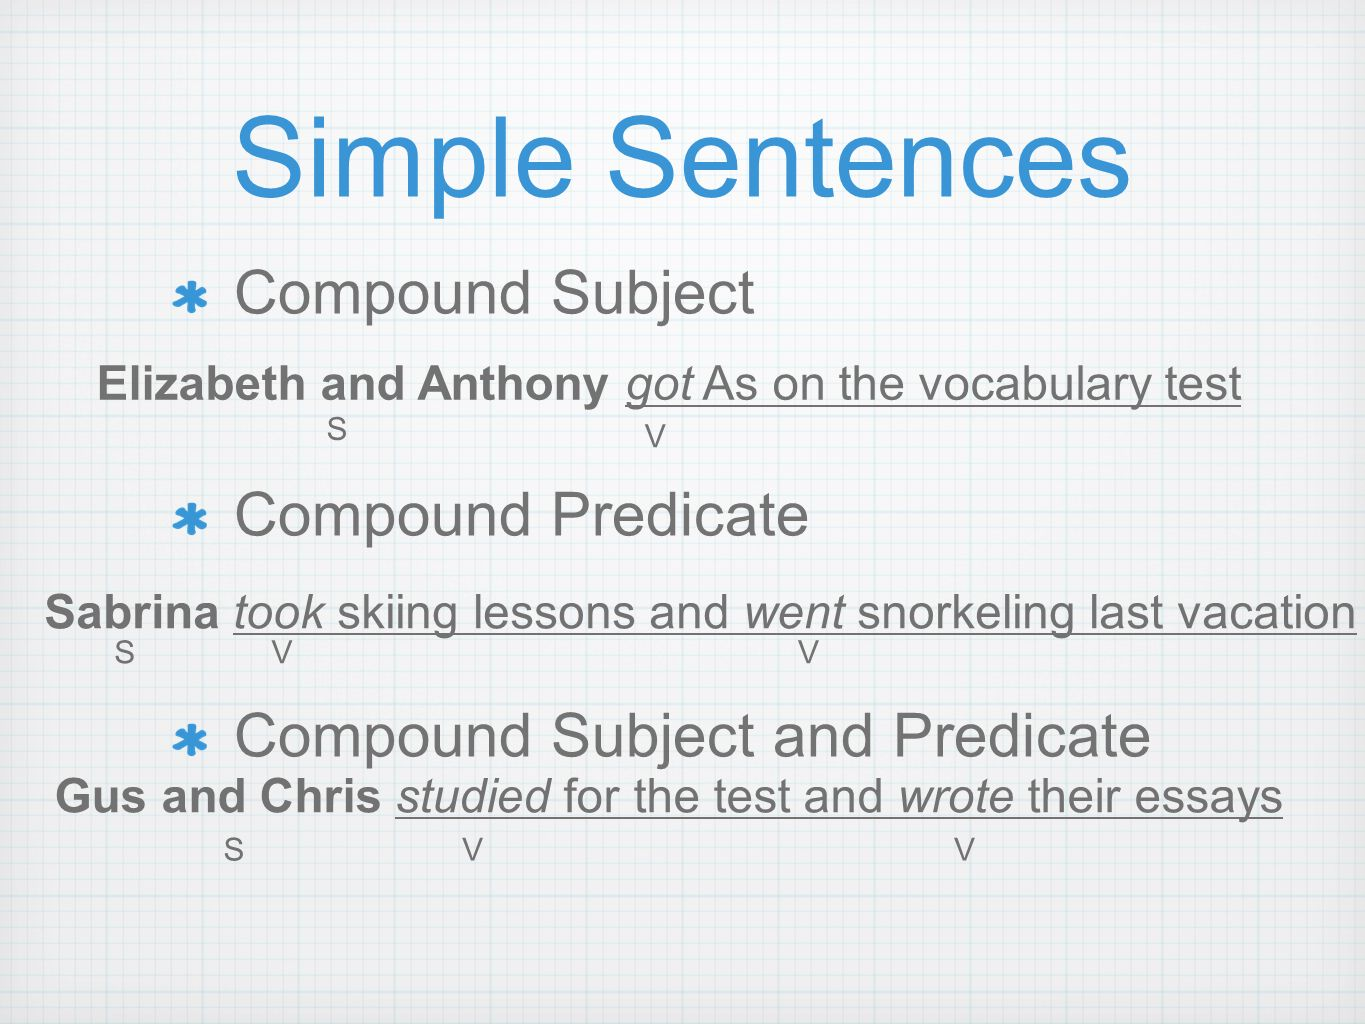 What is an example of a complete predicate in a sentence?